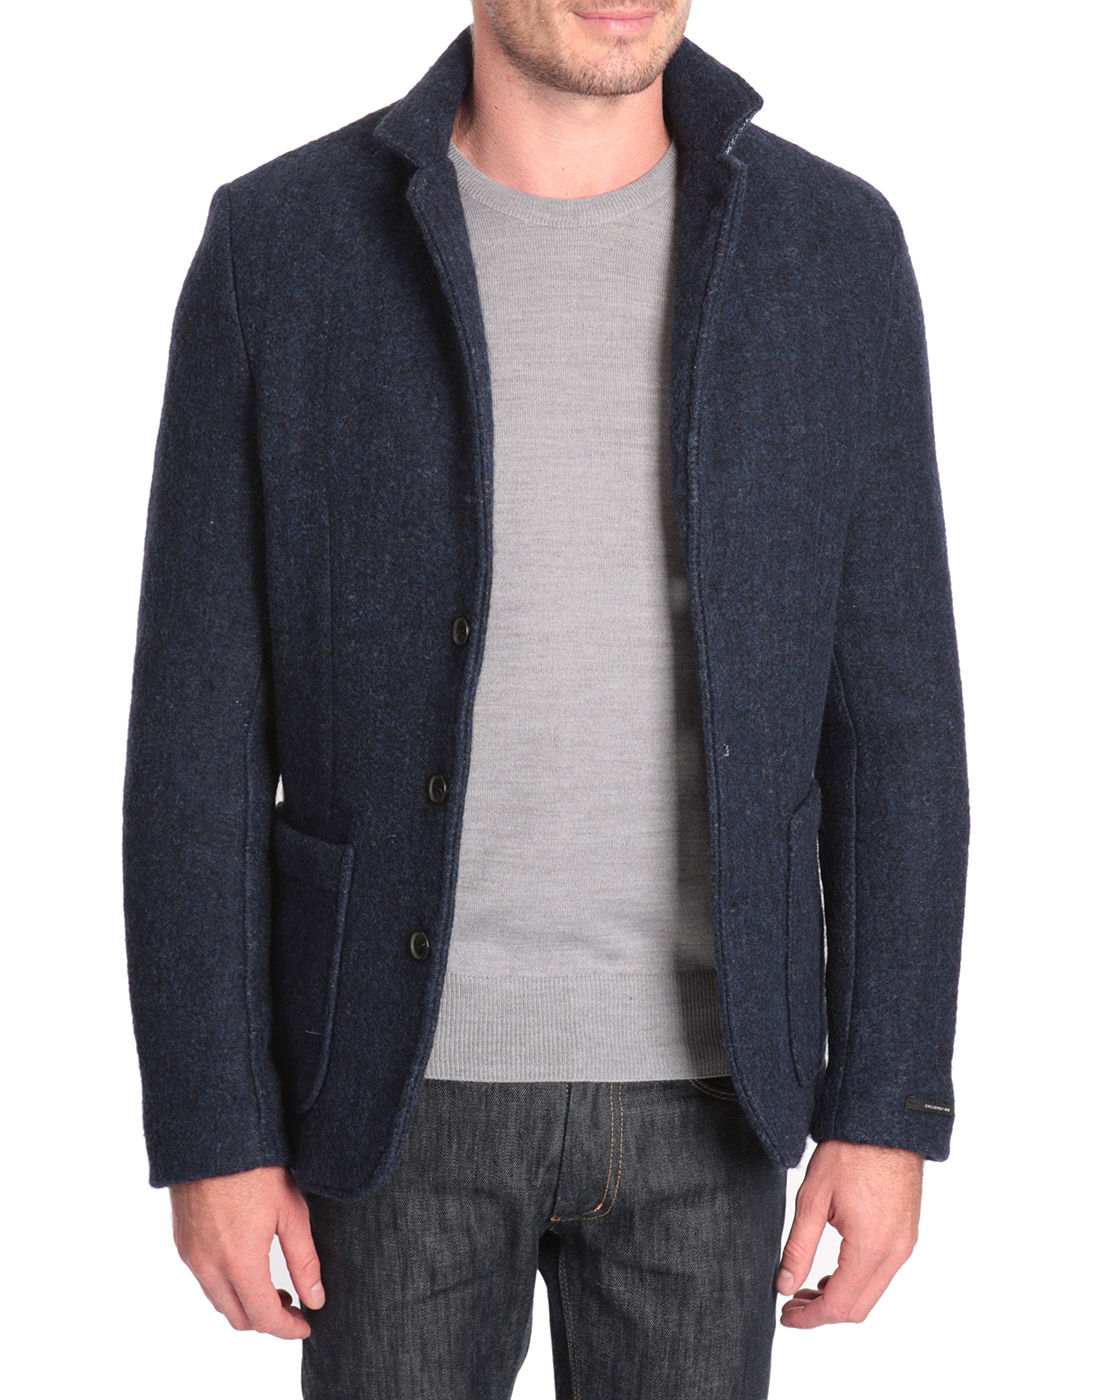 scotch and soda boiled wool jacket with neoprene lining in. Black Bedroom Furniture Sets. Home Design Ideas